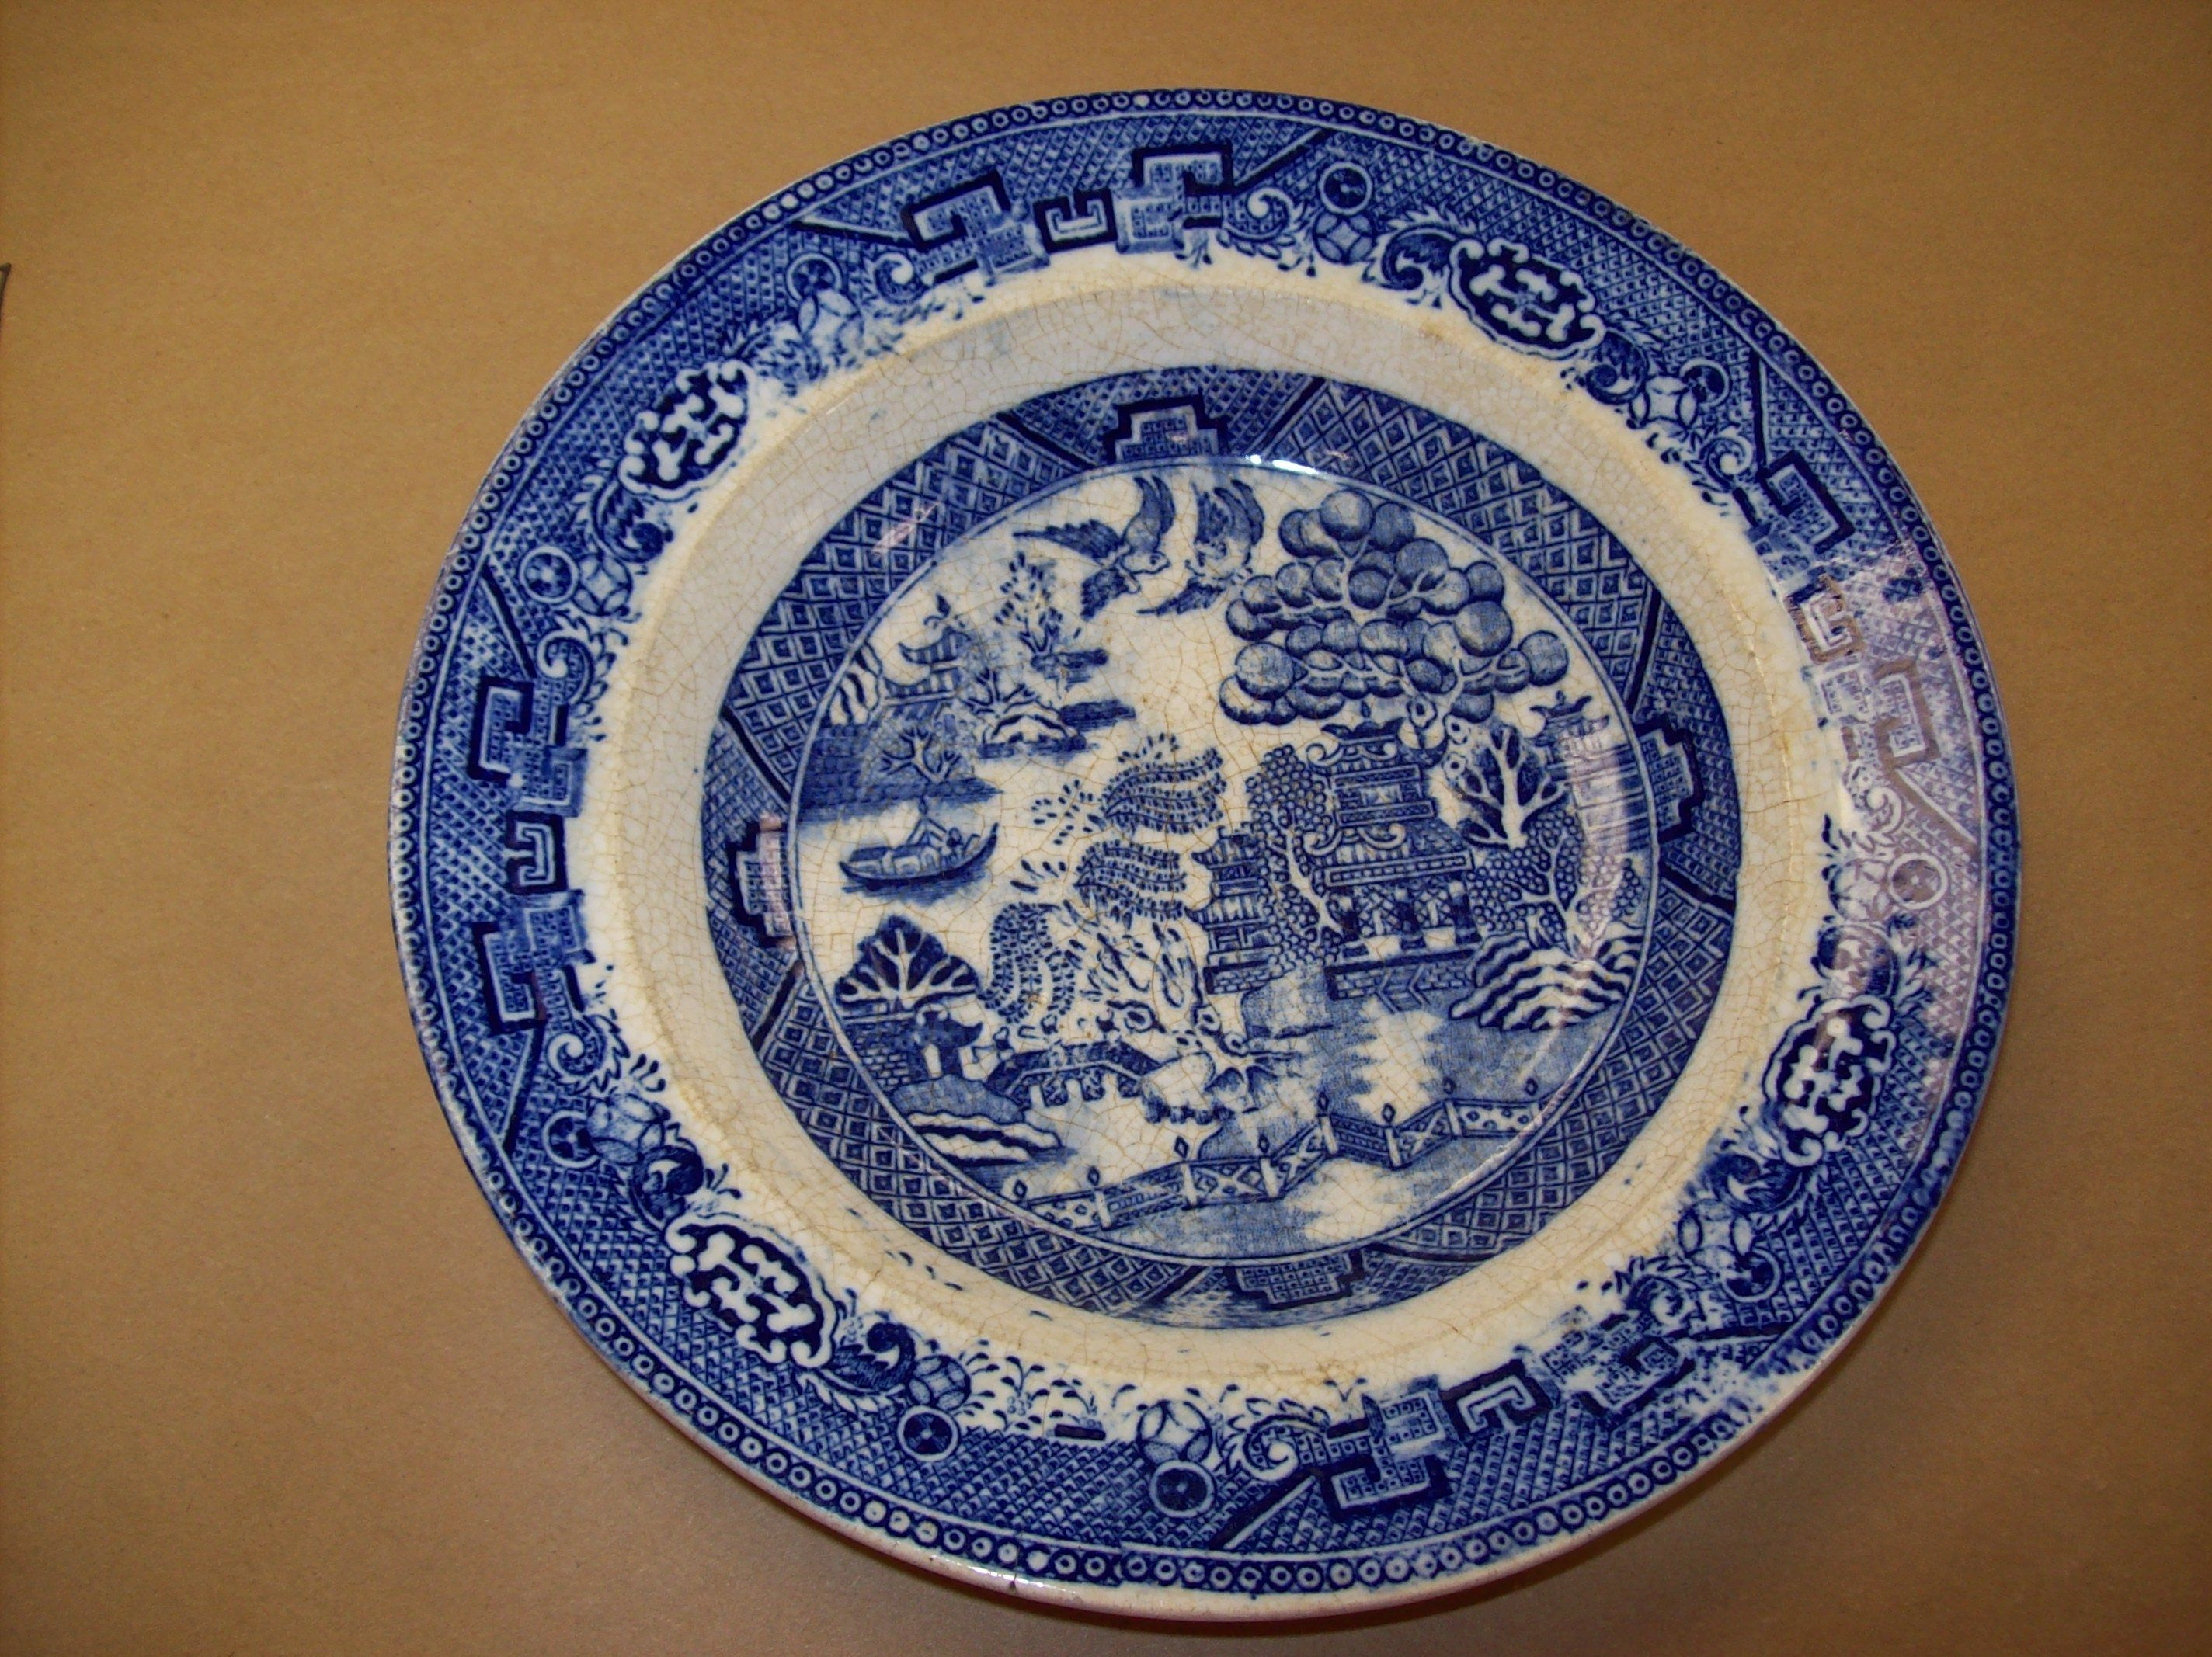 blue objects | Patterned Dishes and Ideology Historical Archaeology of Irish . & blue objects | Patterned Dishes and Ideology Historical Archaeology ...